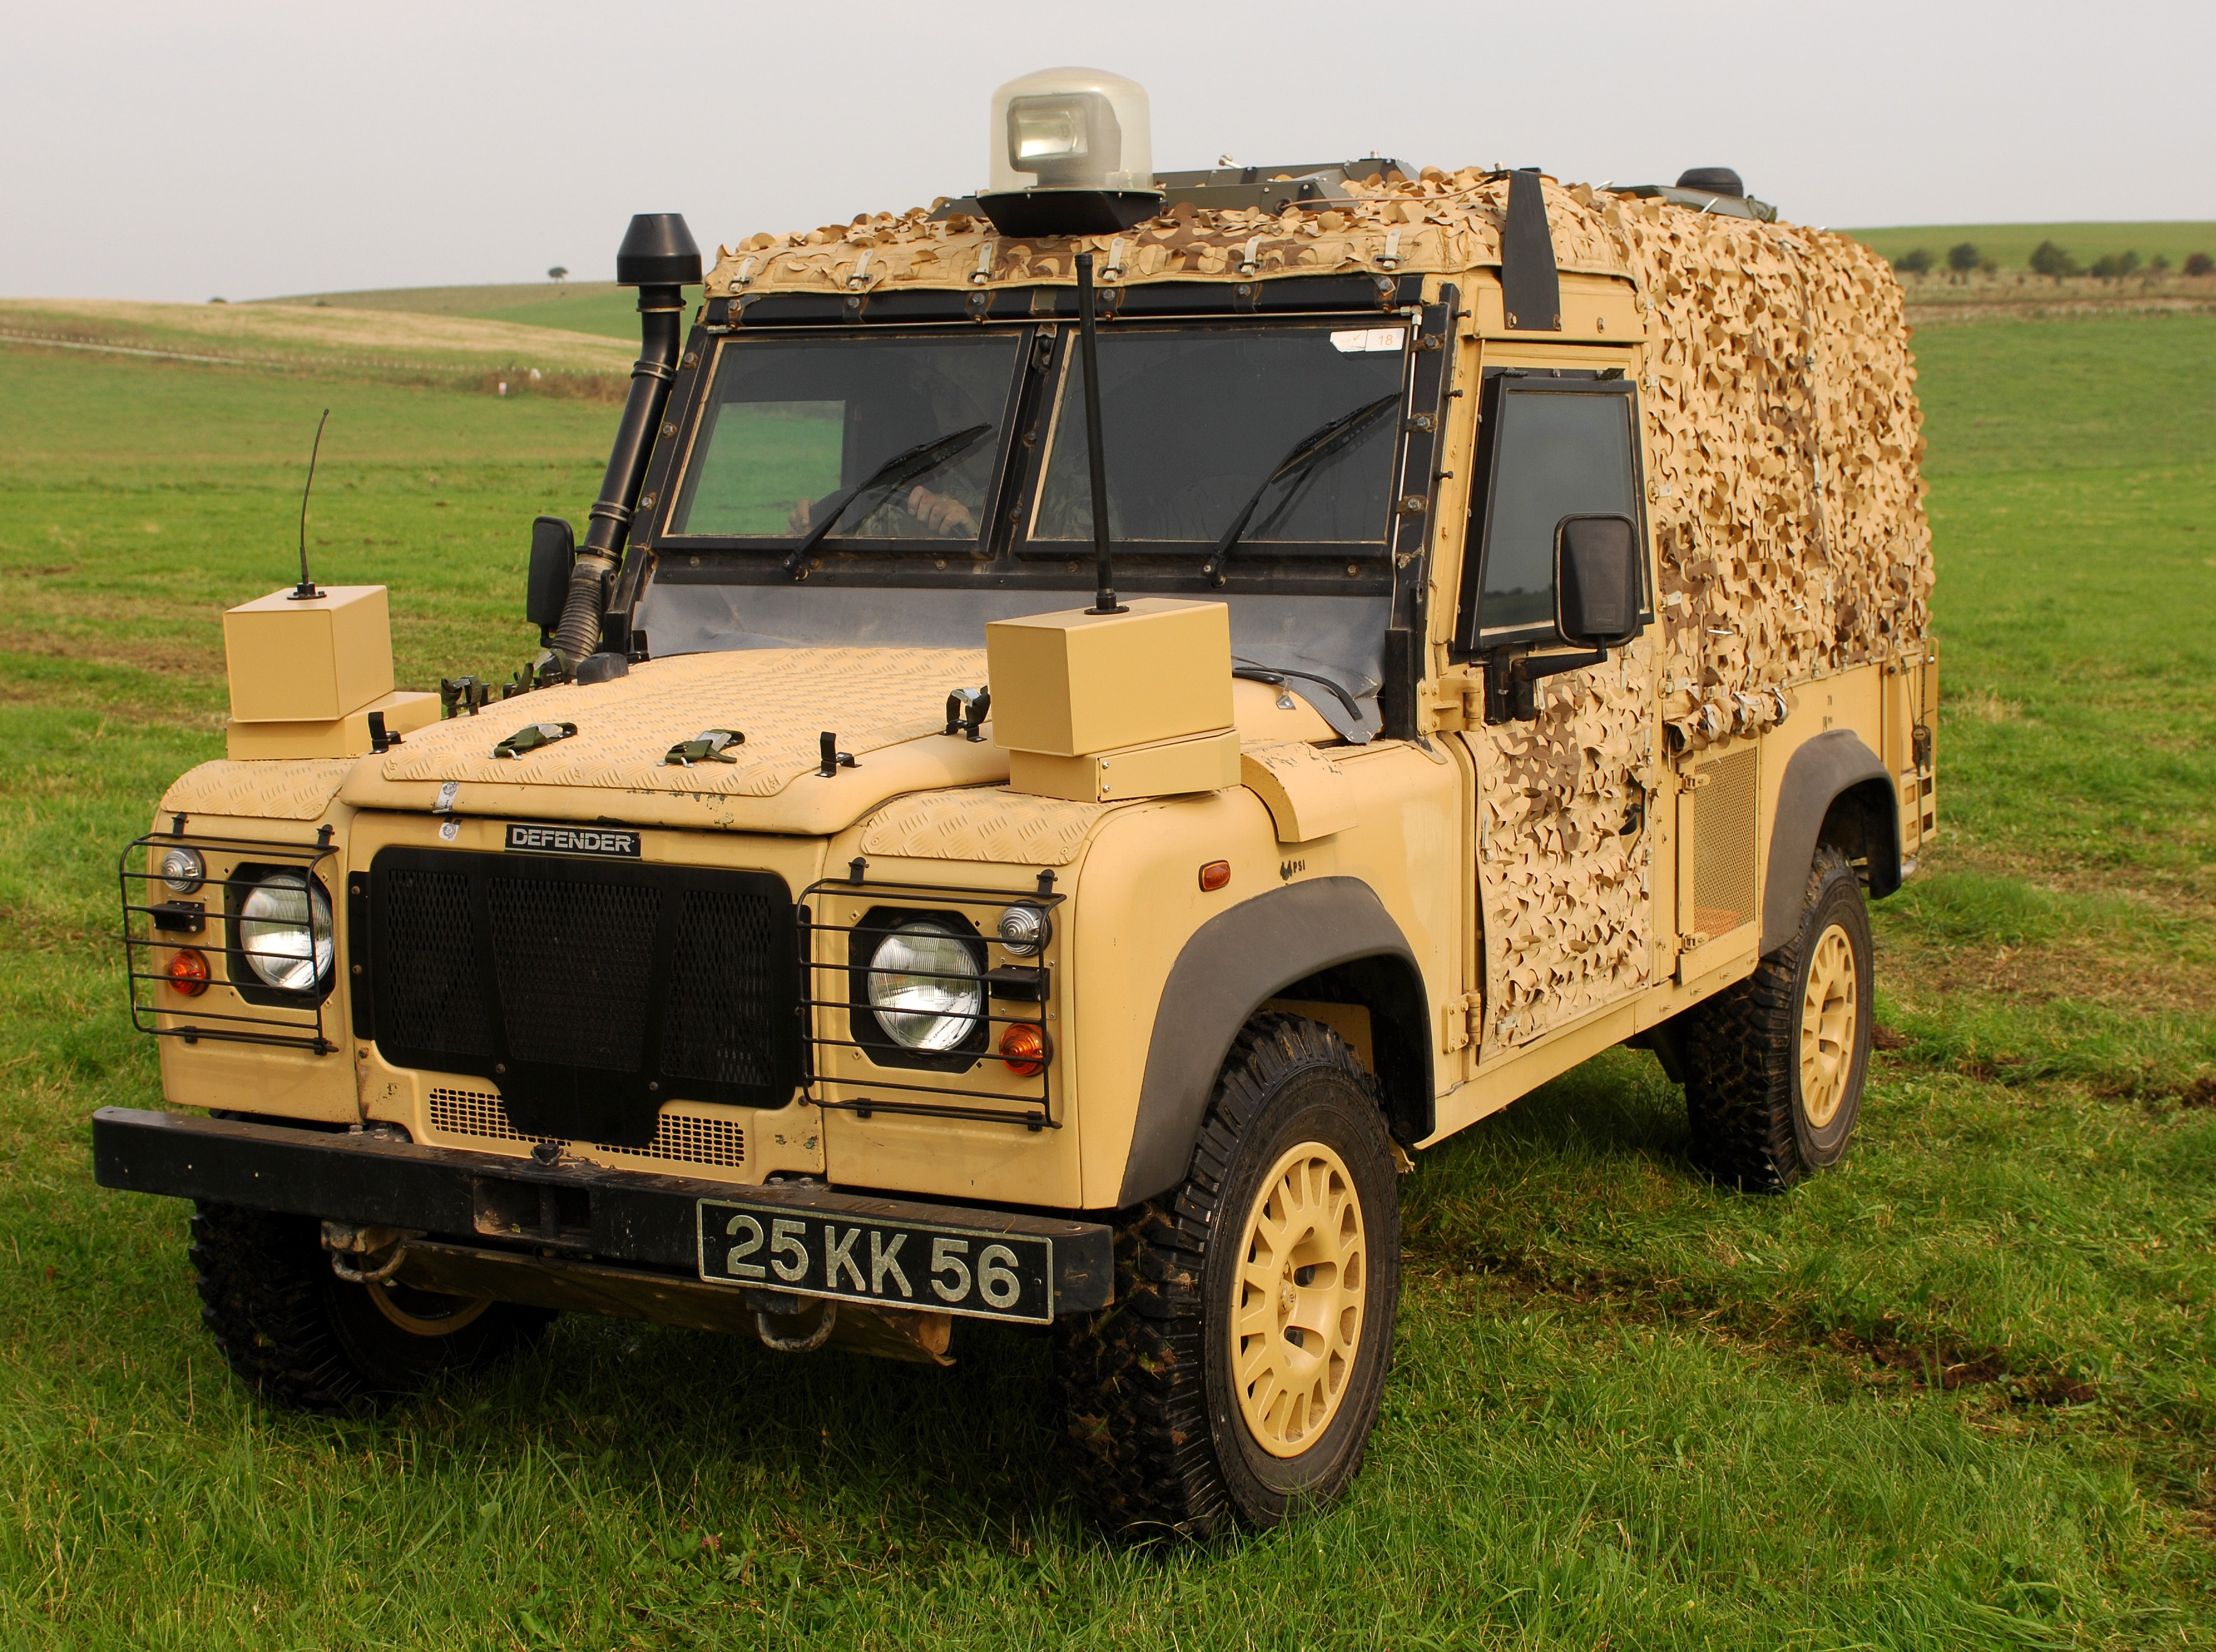 The Land Rover Snatch-Vixen vehicle on show at the Urgent Operational Requirement (UOR) Equipment Demonstration in Salisbury, Wiltshire.